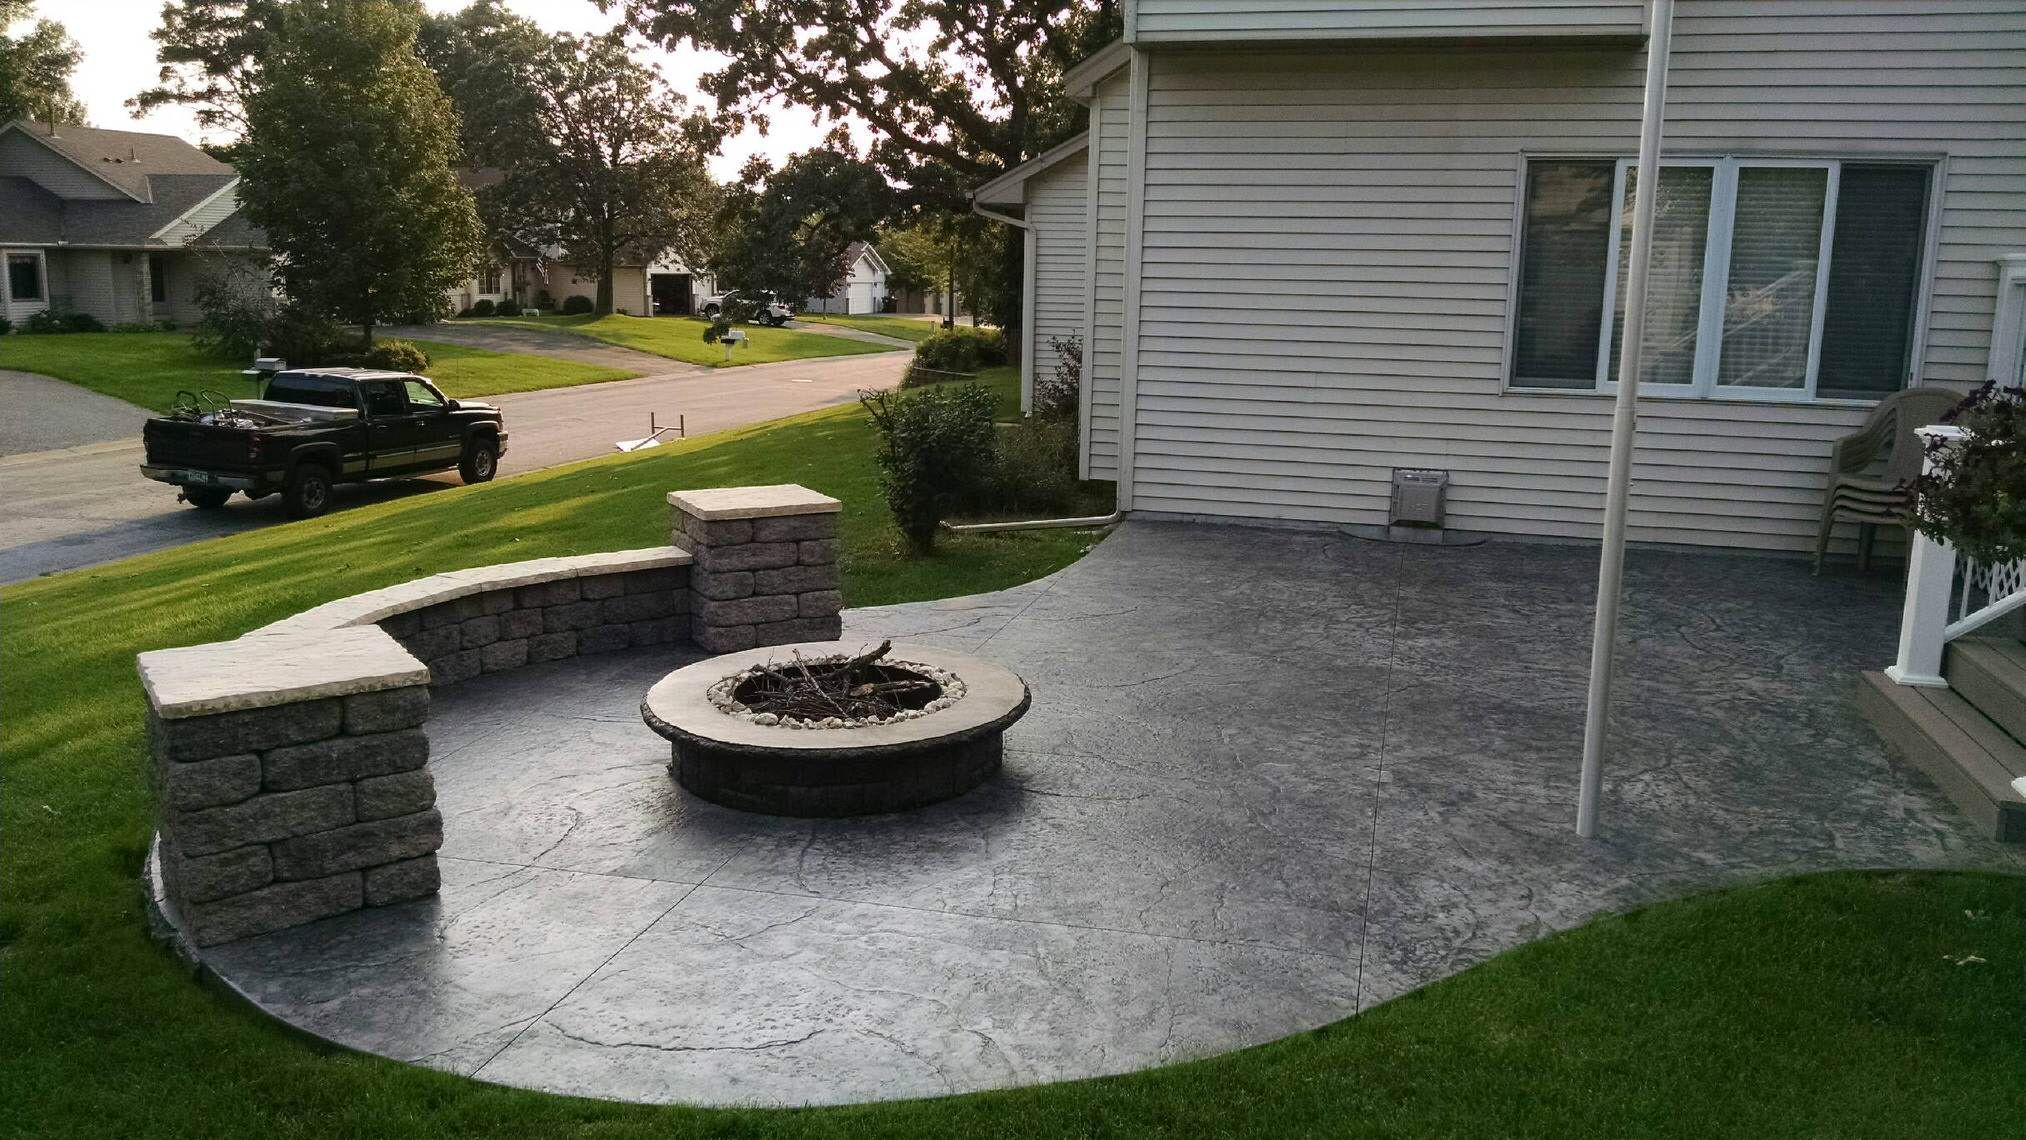 Stamped Concrete Patio With Fire Pit And Seating Walls By